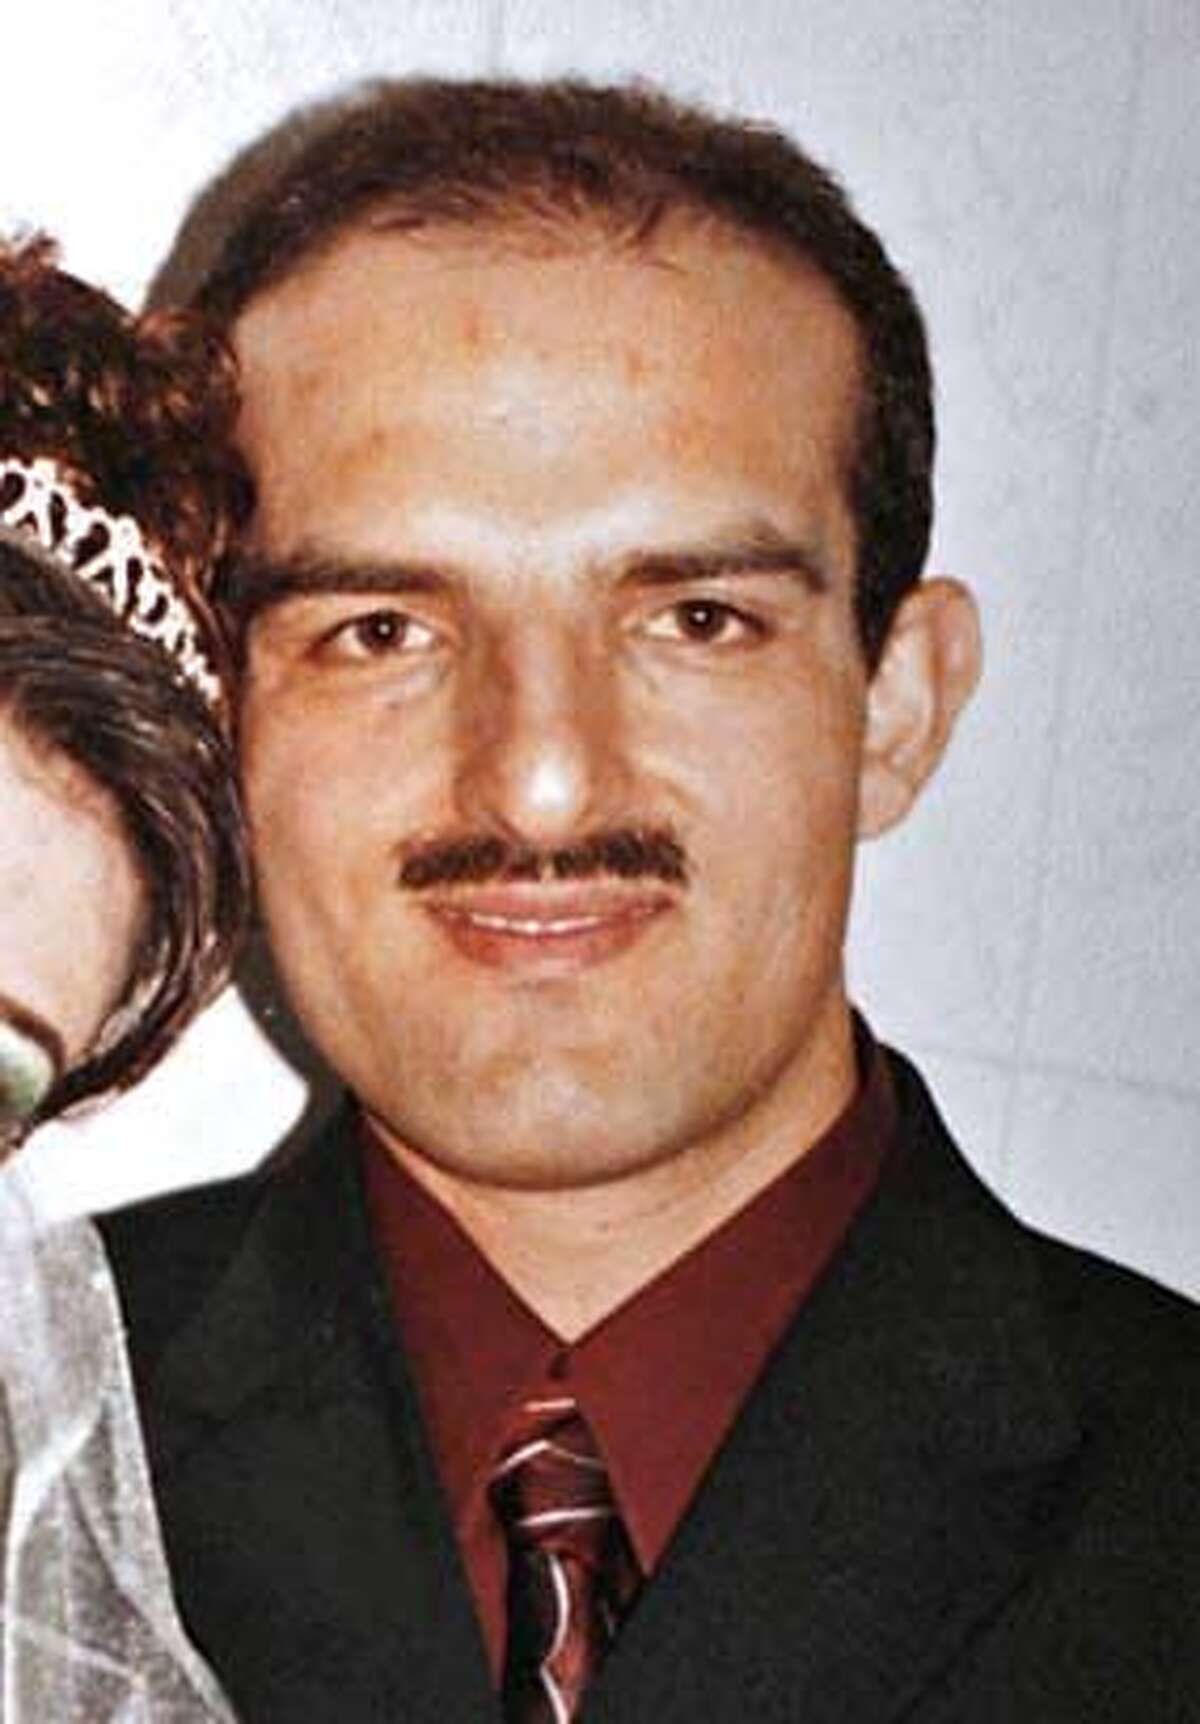 hitandrun_266_mac.jpg Wedding photo believed to be about two weeks old, showing Omeer with his new bride Nahid, taken in Afghanistan. Hit and run victims in the Fremont area as well as San Francisco, 13 victims in all, one confirmed fatality in Fremont. Suspect Omeed Aziz Bopal of Fremont Event in, Fremont, Ca, on 8/29/06. Hand Out Photo Mandatory credit for Photographer and San Francisco Chronicle / Magazines Out